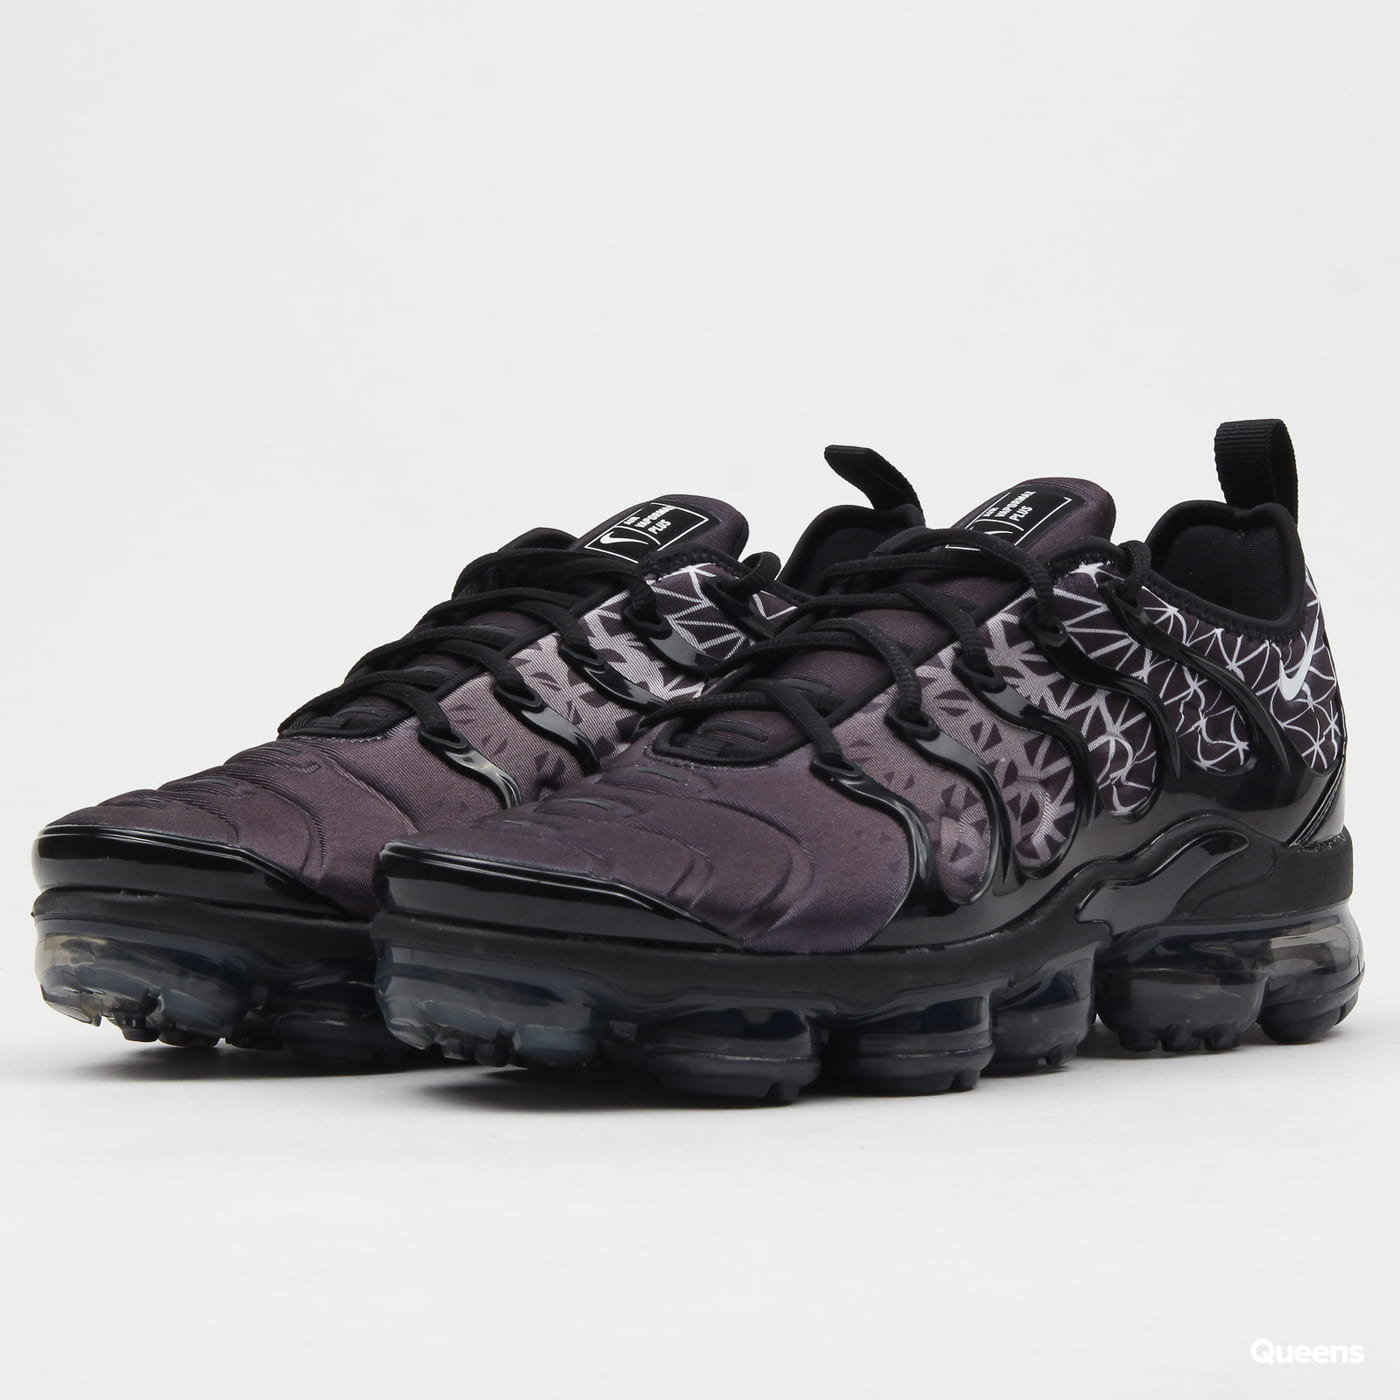 new product c1236 4ff6f Boty Nike Air Vapormax Plus (924453-017) – Queens 💚